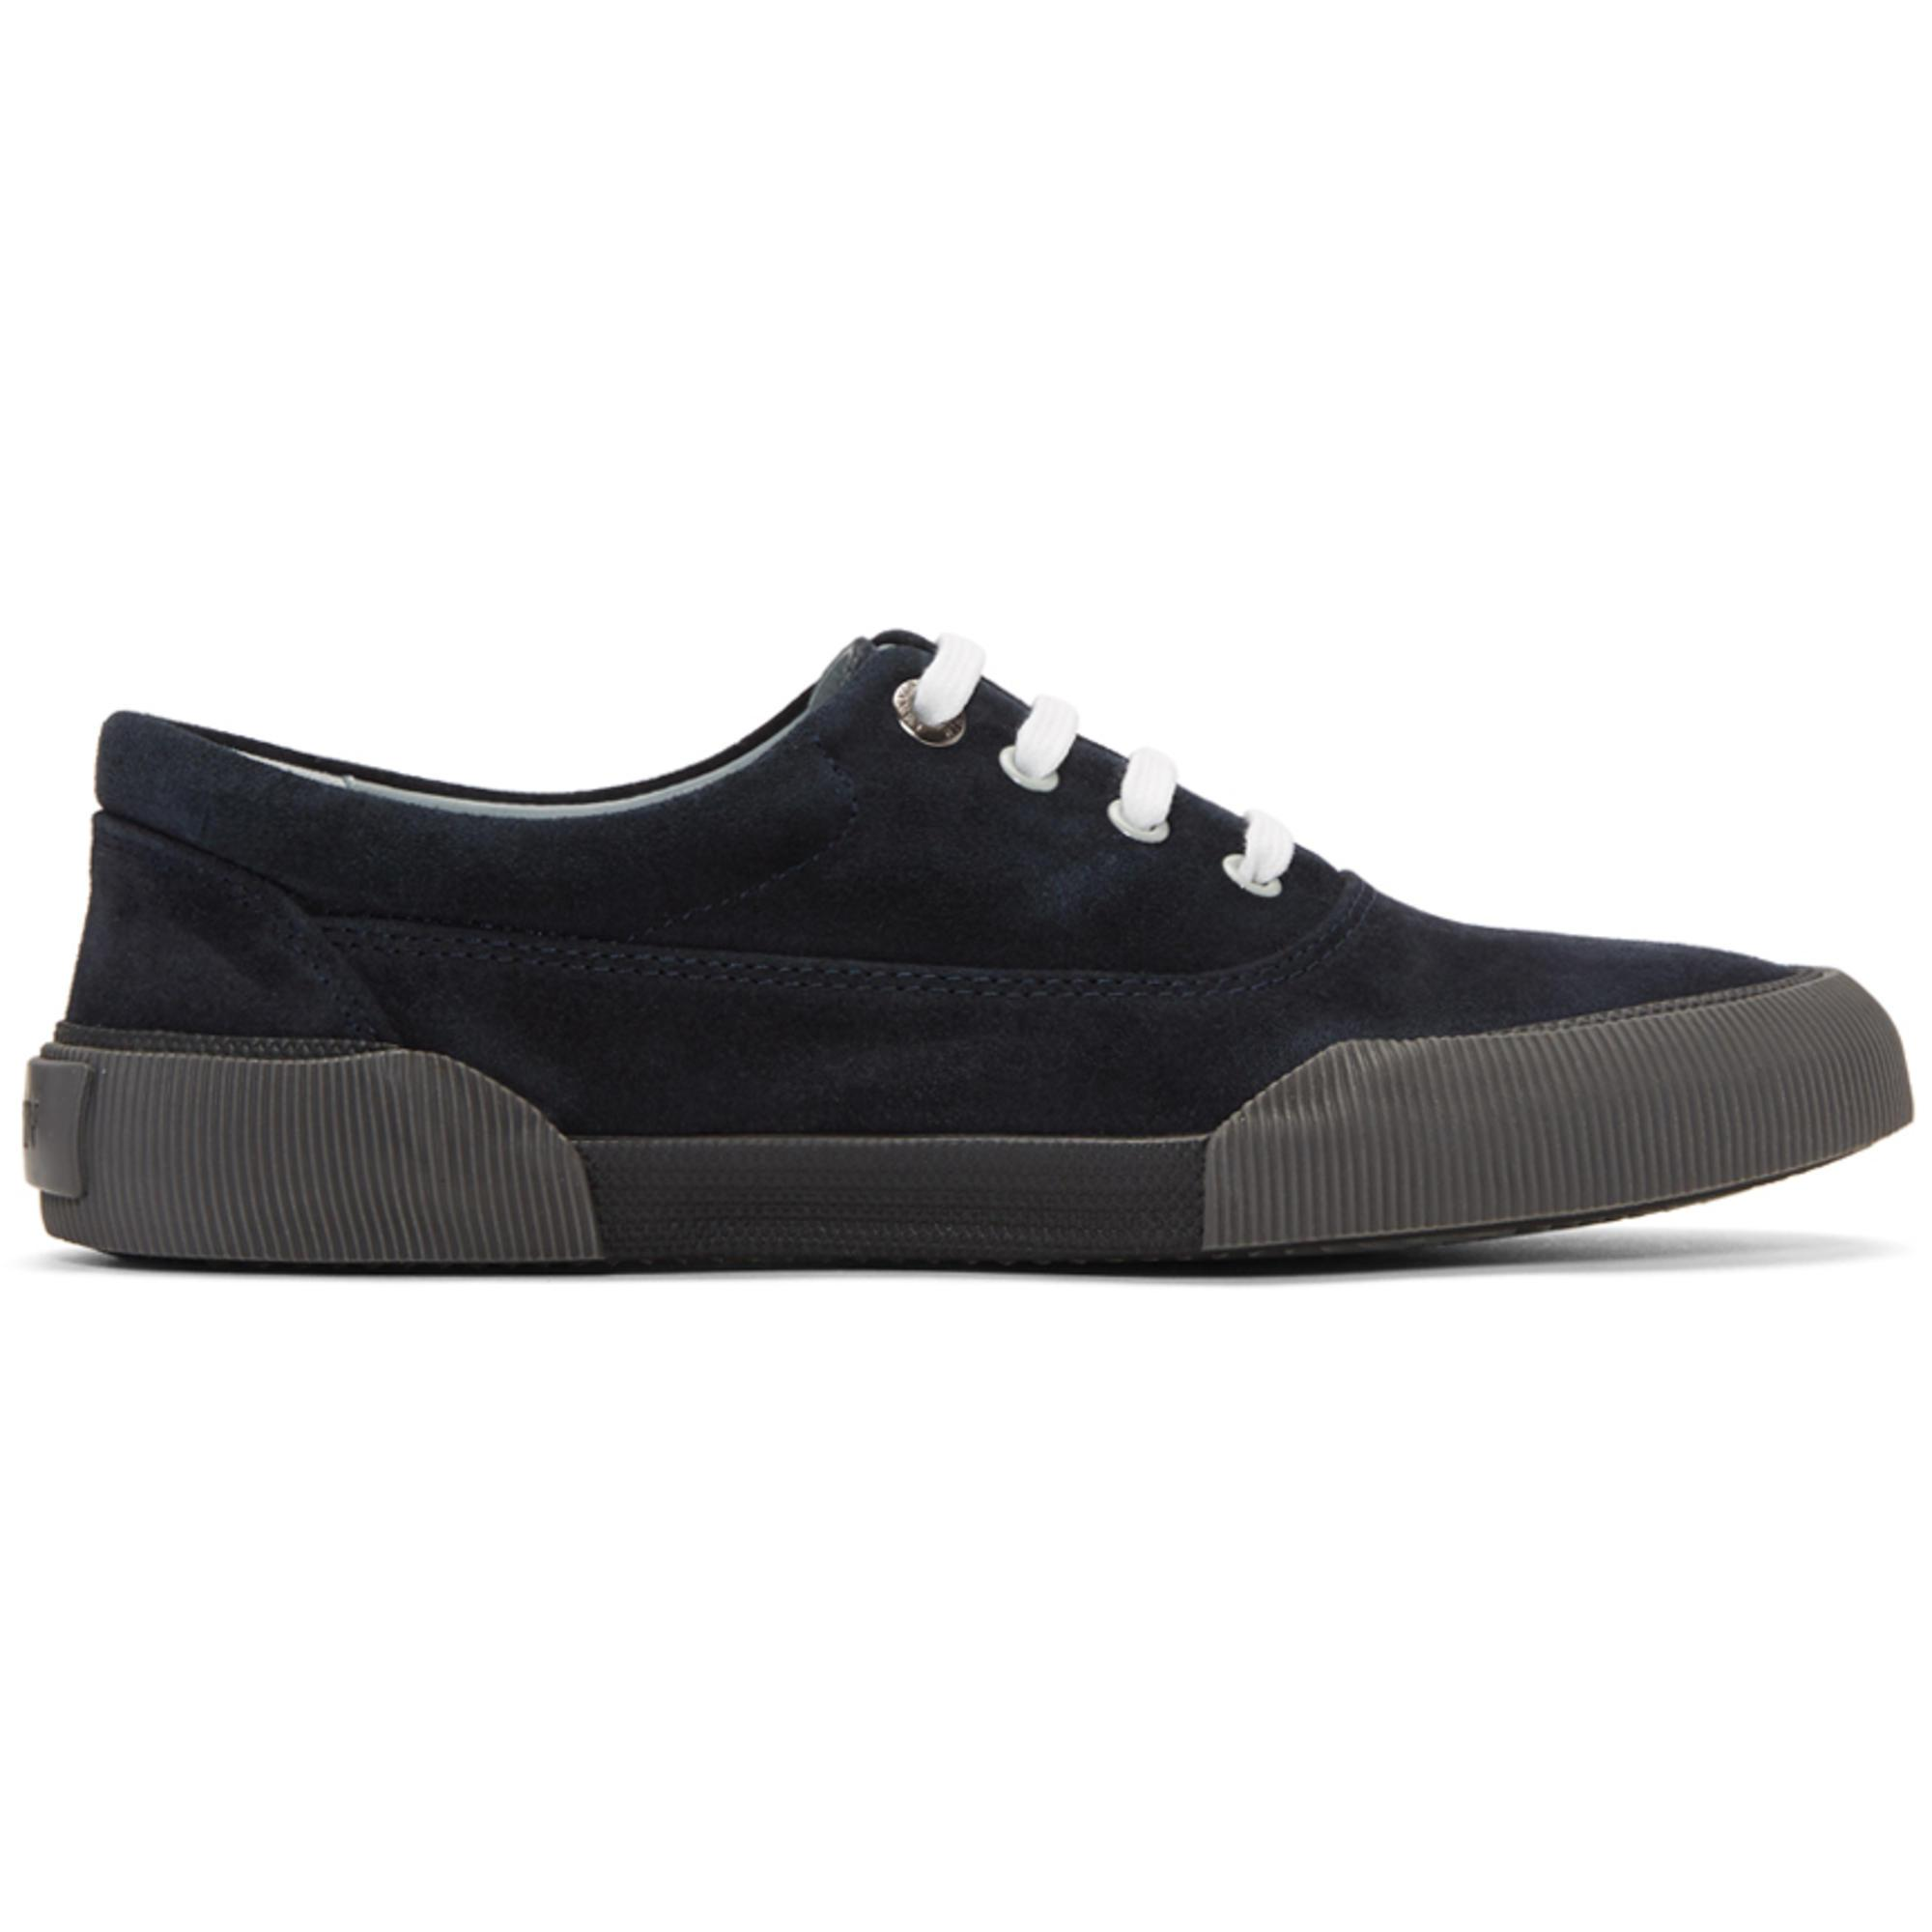 Lanvin Navy Suede Oxford Sneakers f9155uGrZ1